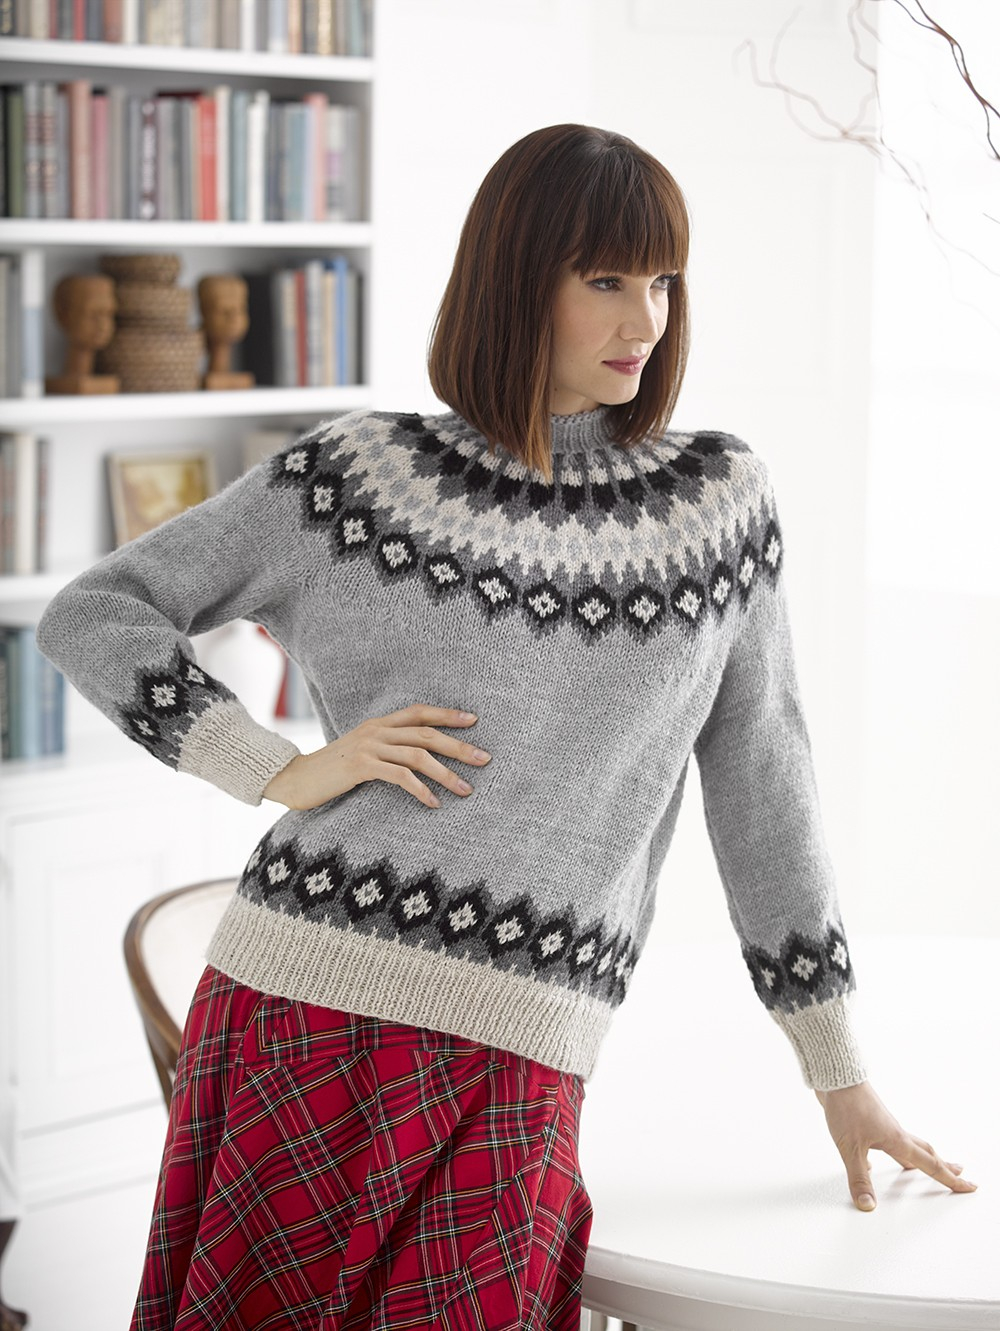 Yoke Knitting Pattern The Yoke Sweater Trend In 13 Patterns Lion Brand Notebook